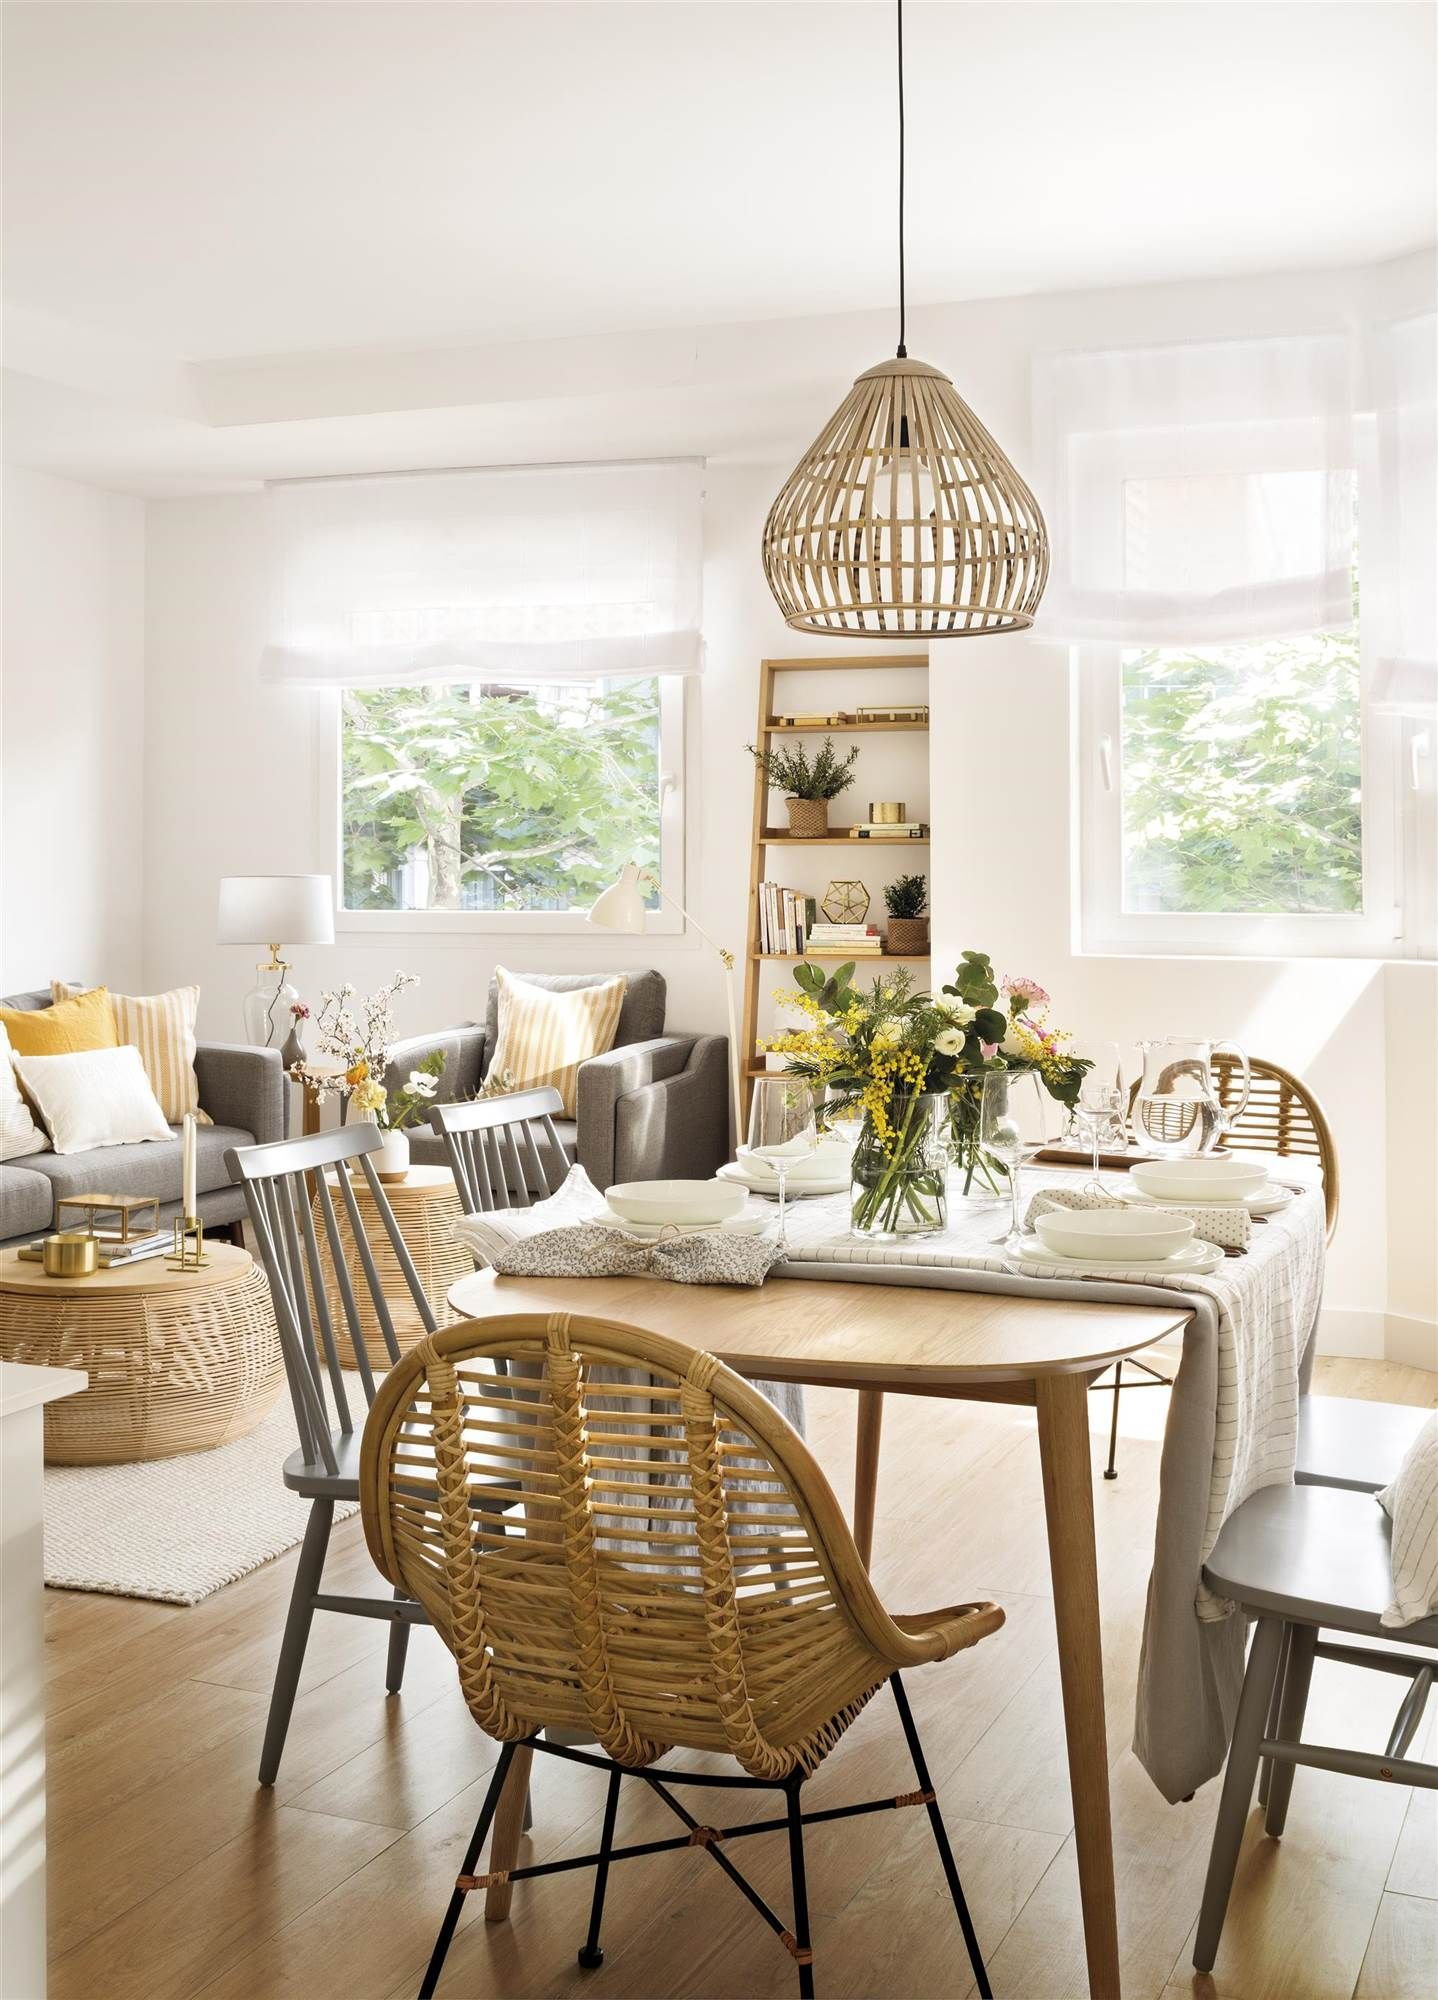 dining set, wooden floor, wooden table, rattan chair, gey wooden chairs, rattan pendants